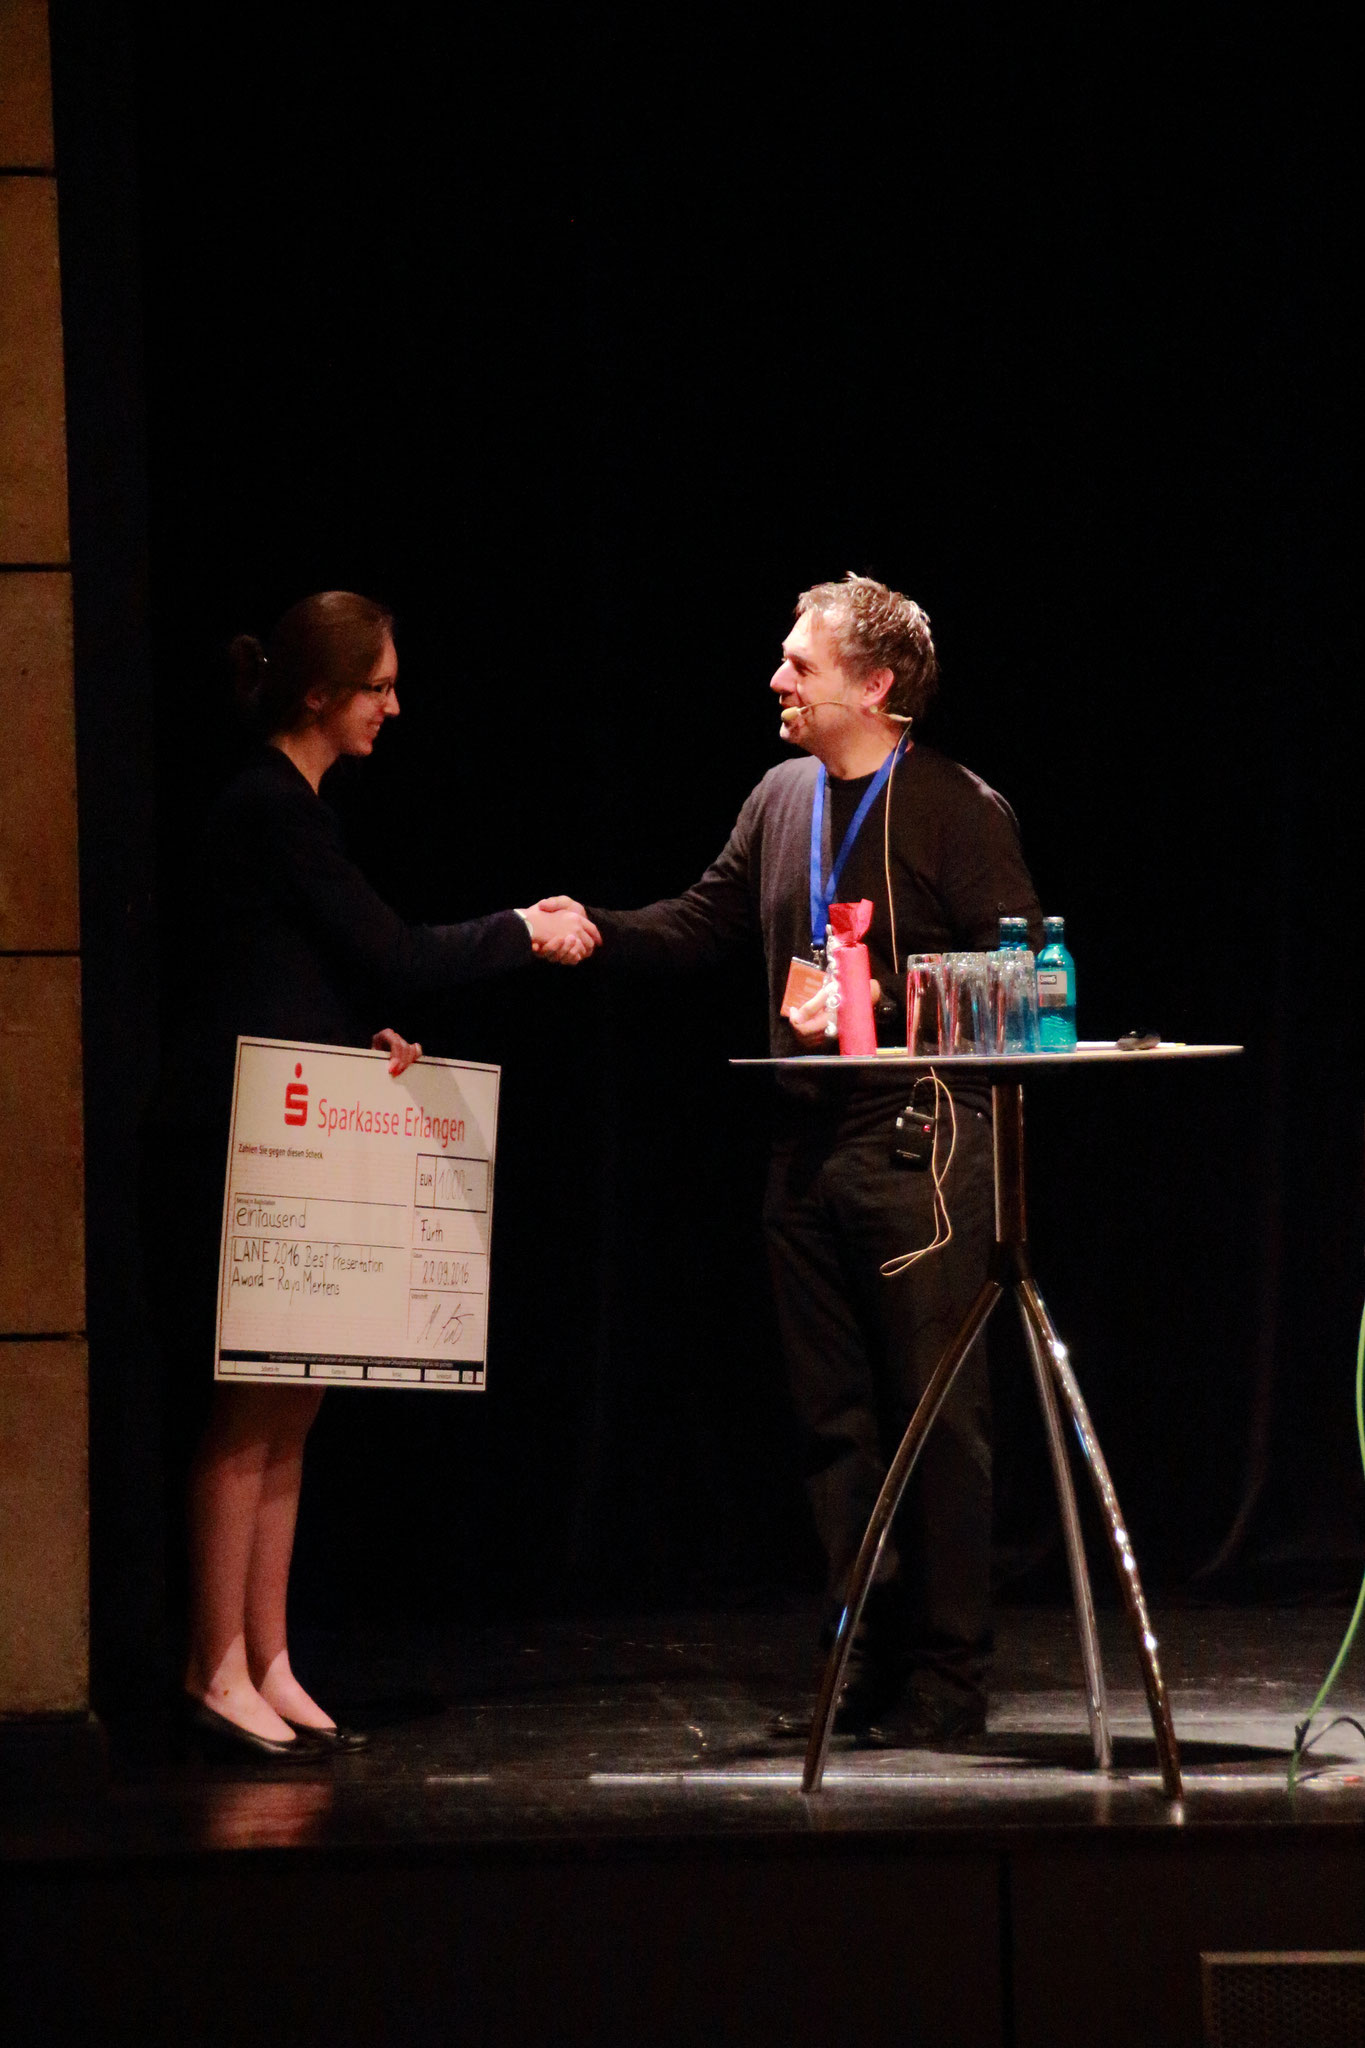 Prof. Michael Schmidt congratulates Raya Mertens (KU Leuven, Belgium) on winning the LANE 2016 Best Presentation Award